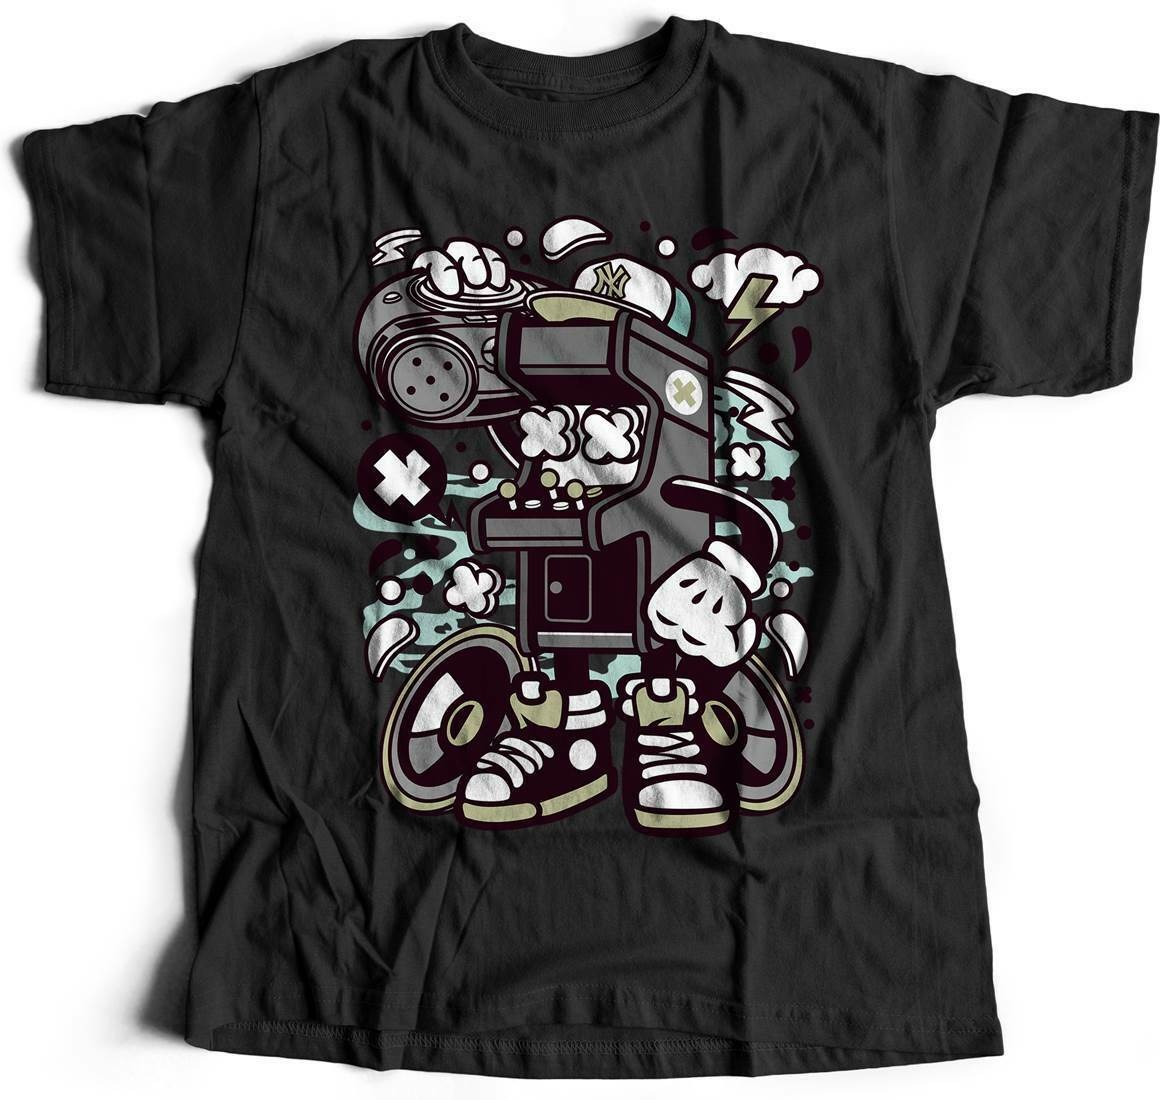 Arcade Game Boombox Geek T-Shirt Over Nerd Video Gamer Retro Club 8 Bit Leg C481 image